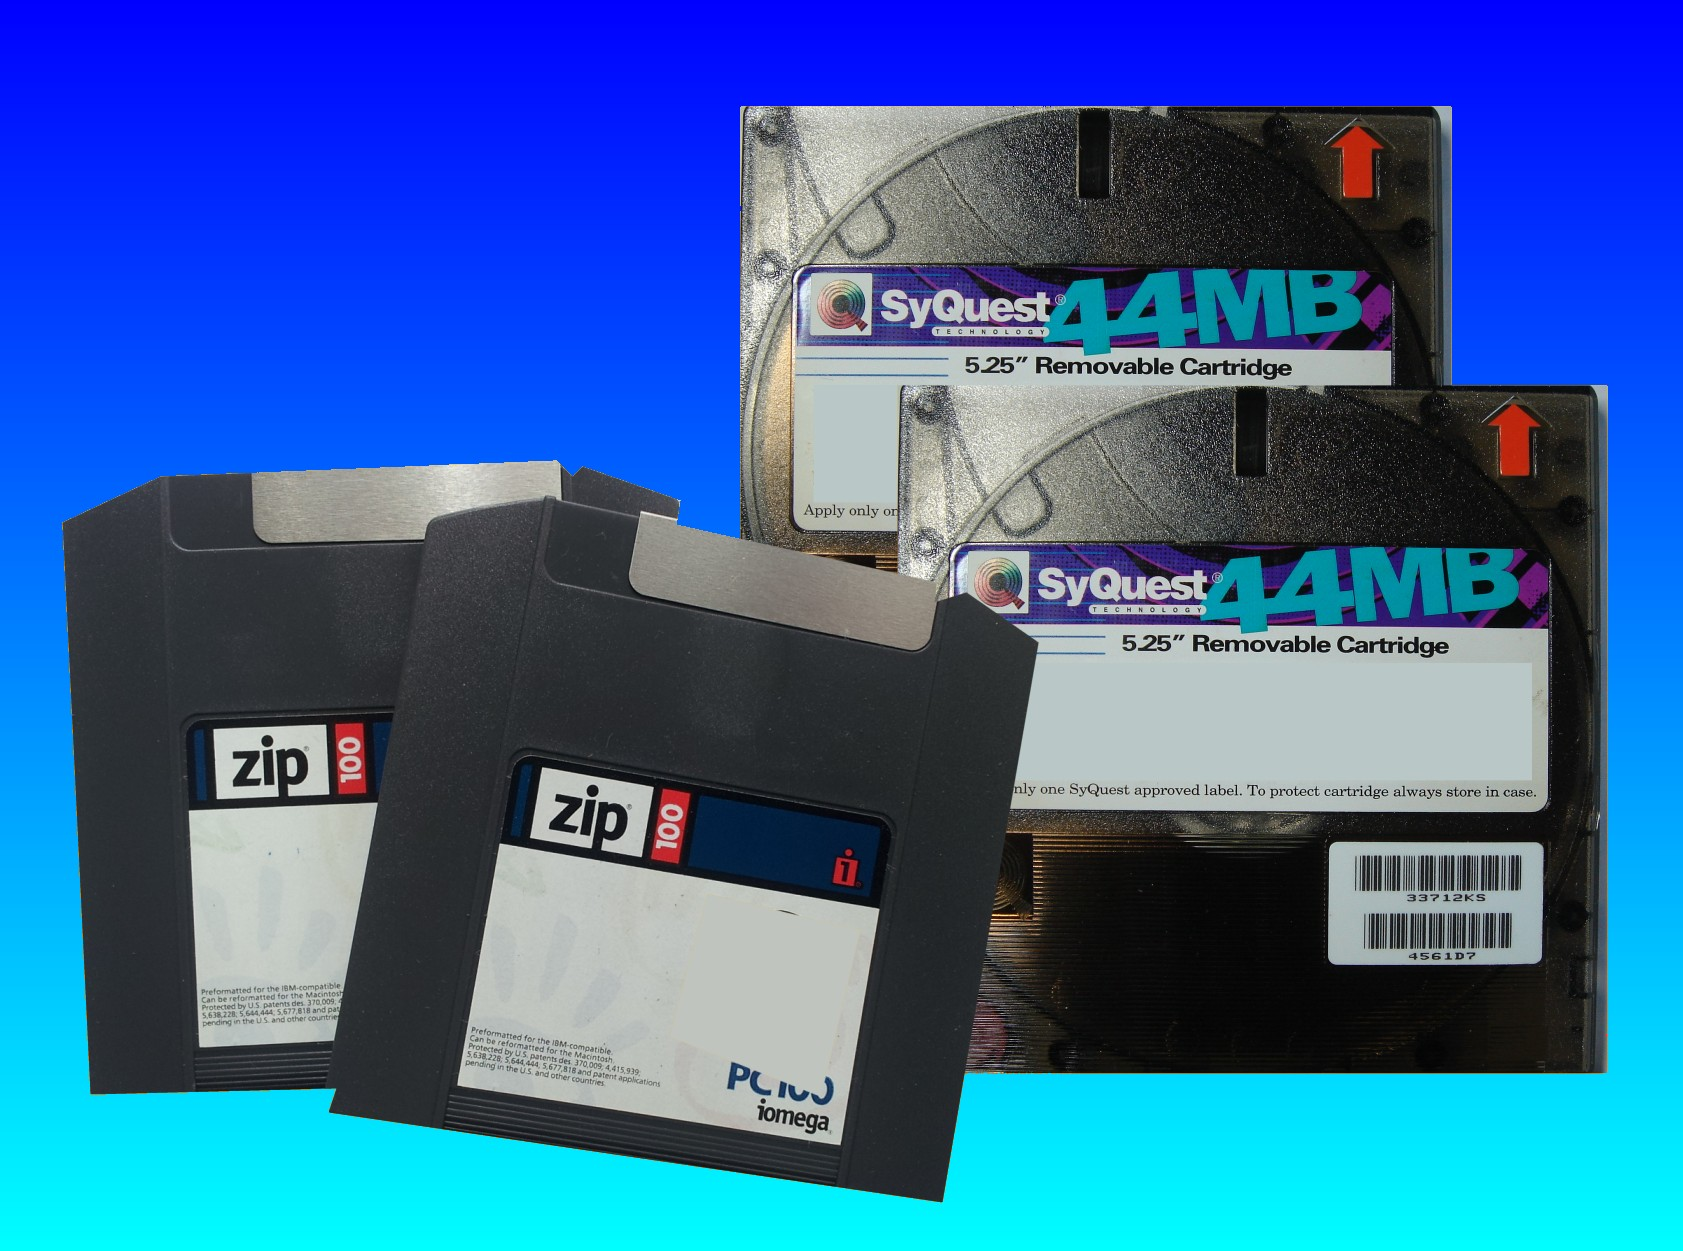 A pair of ZIP 100mb and a pair of Syquest 44mb disks are shown stacked together and awaiting data transfer to email and download files back to the customer. The disks were formatted in an Apple Mac and contained artwork project.